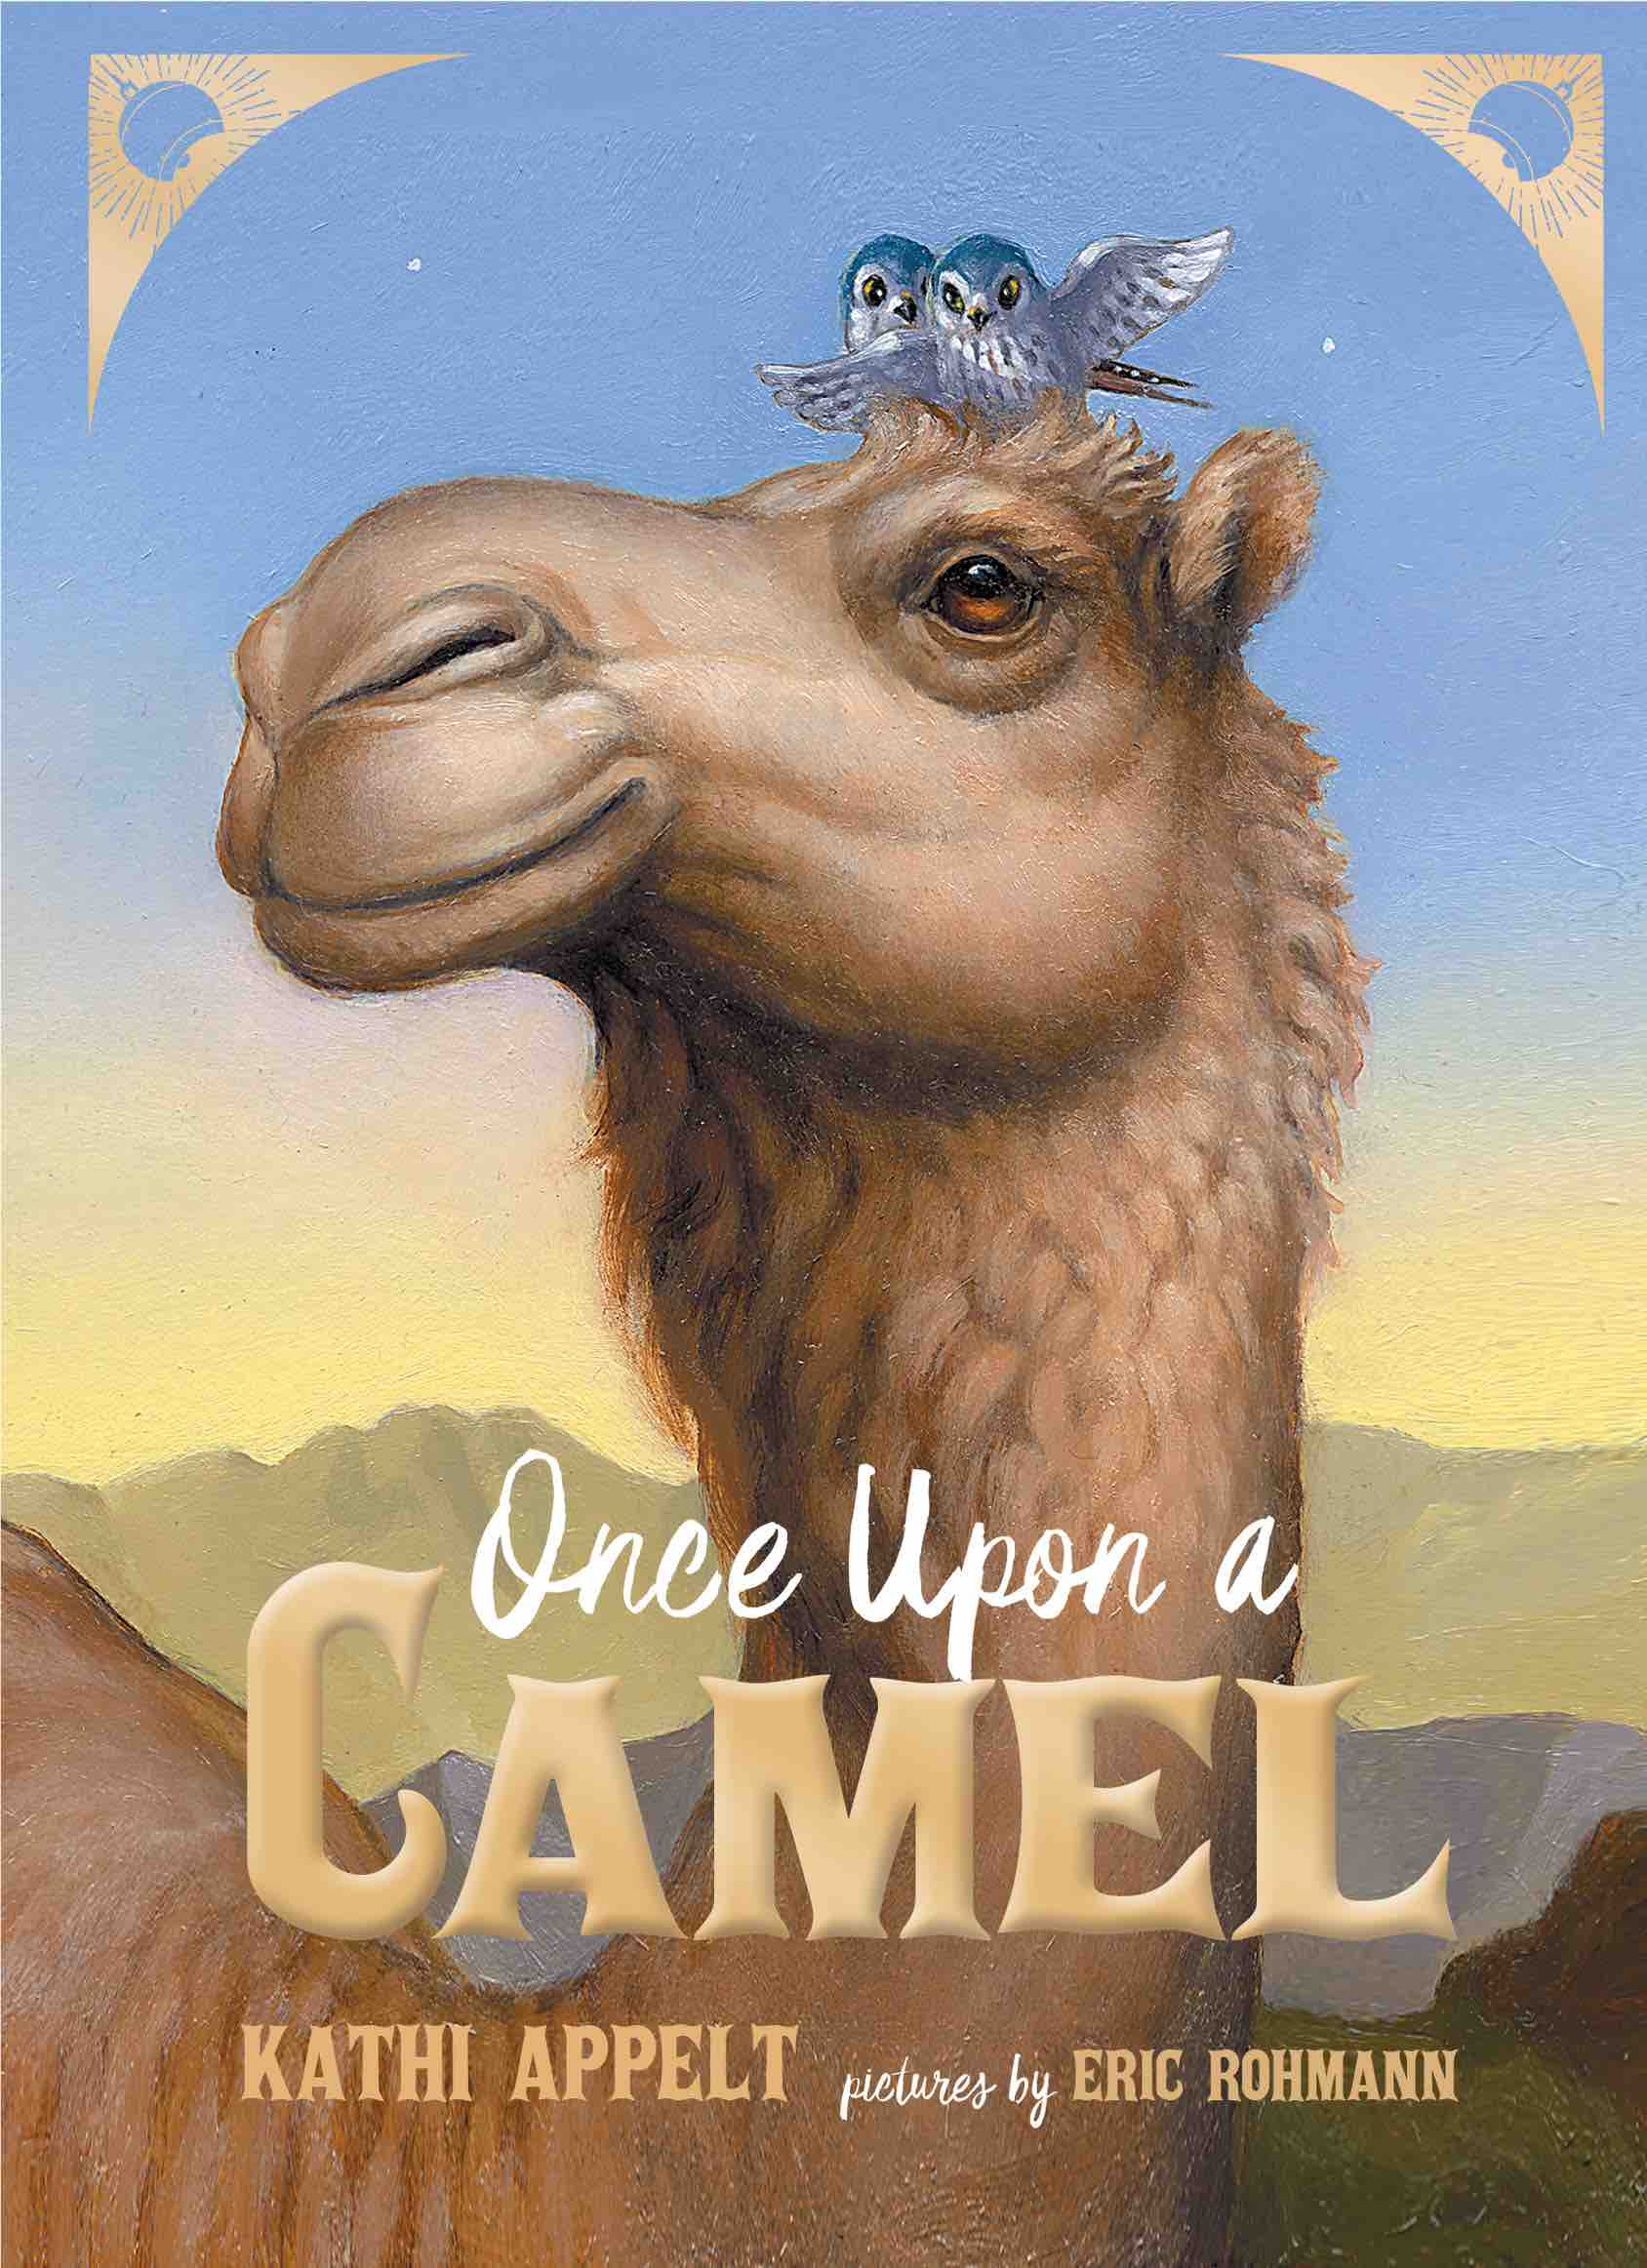 Once Upon A Camel